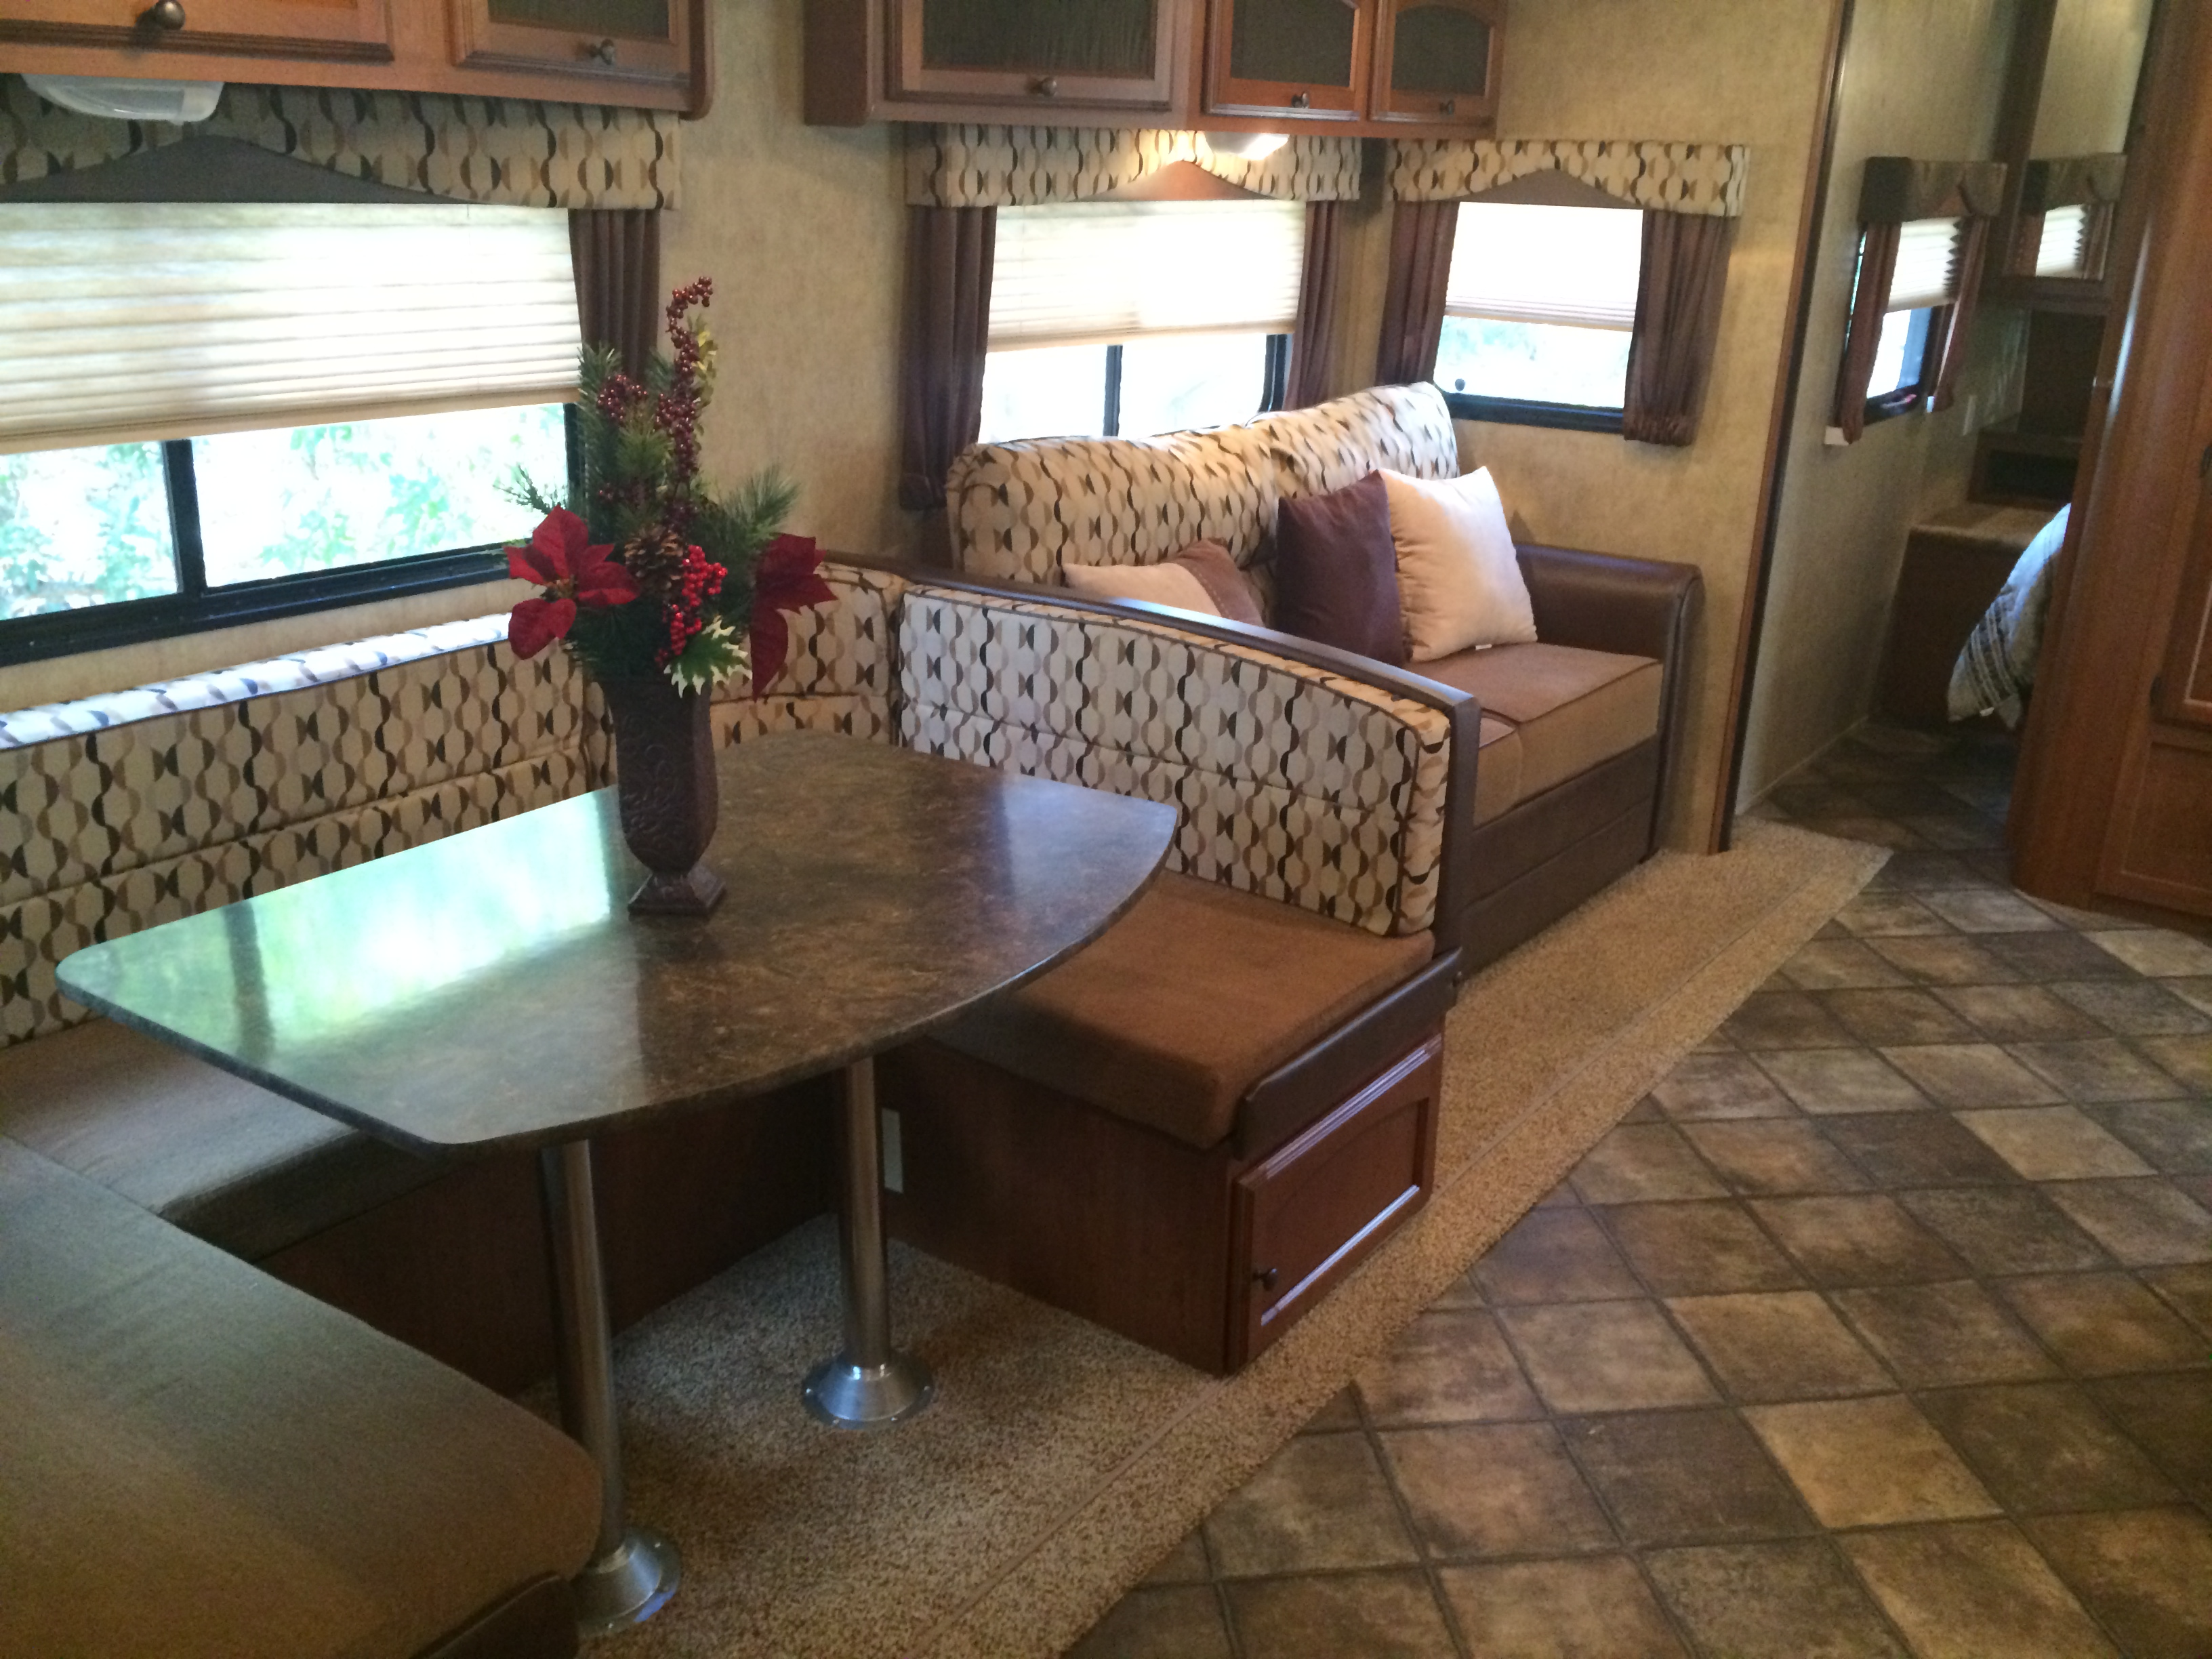 Disney Glamping at Fort Wilderness Resort in My 2013 Meacham s RV